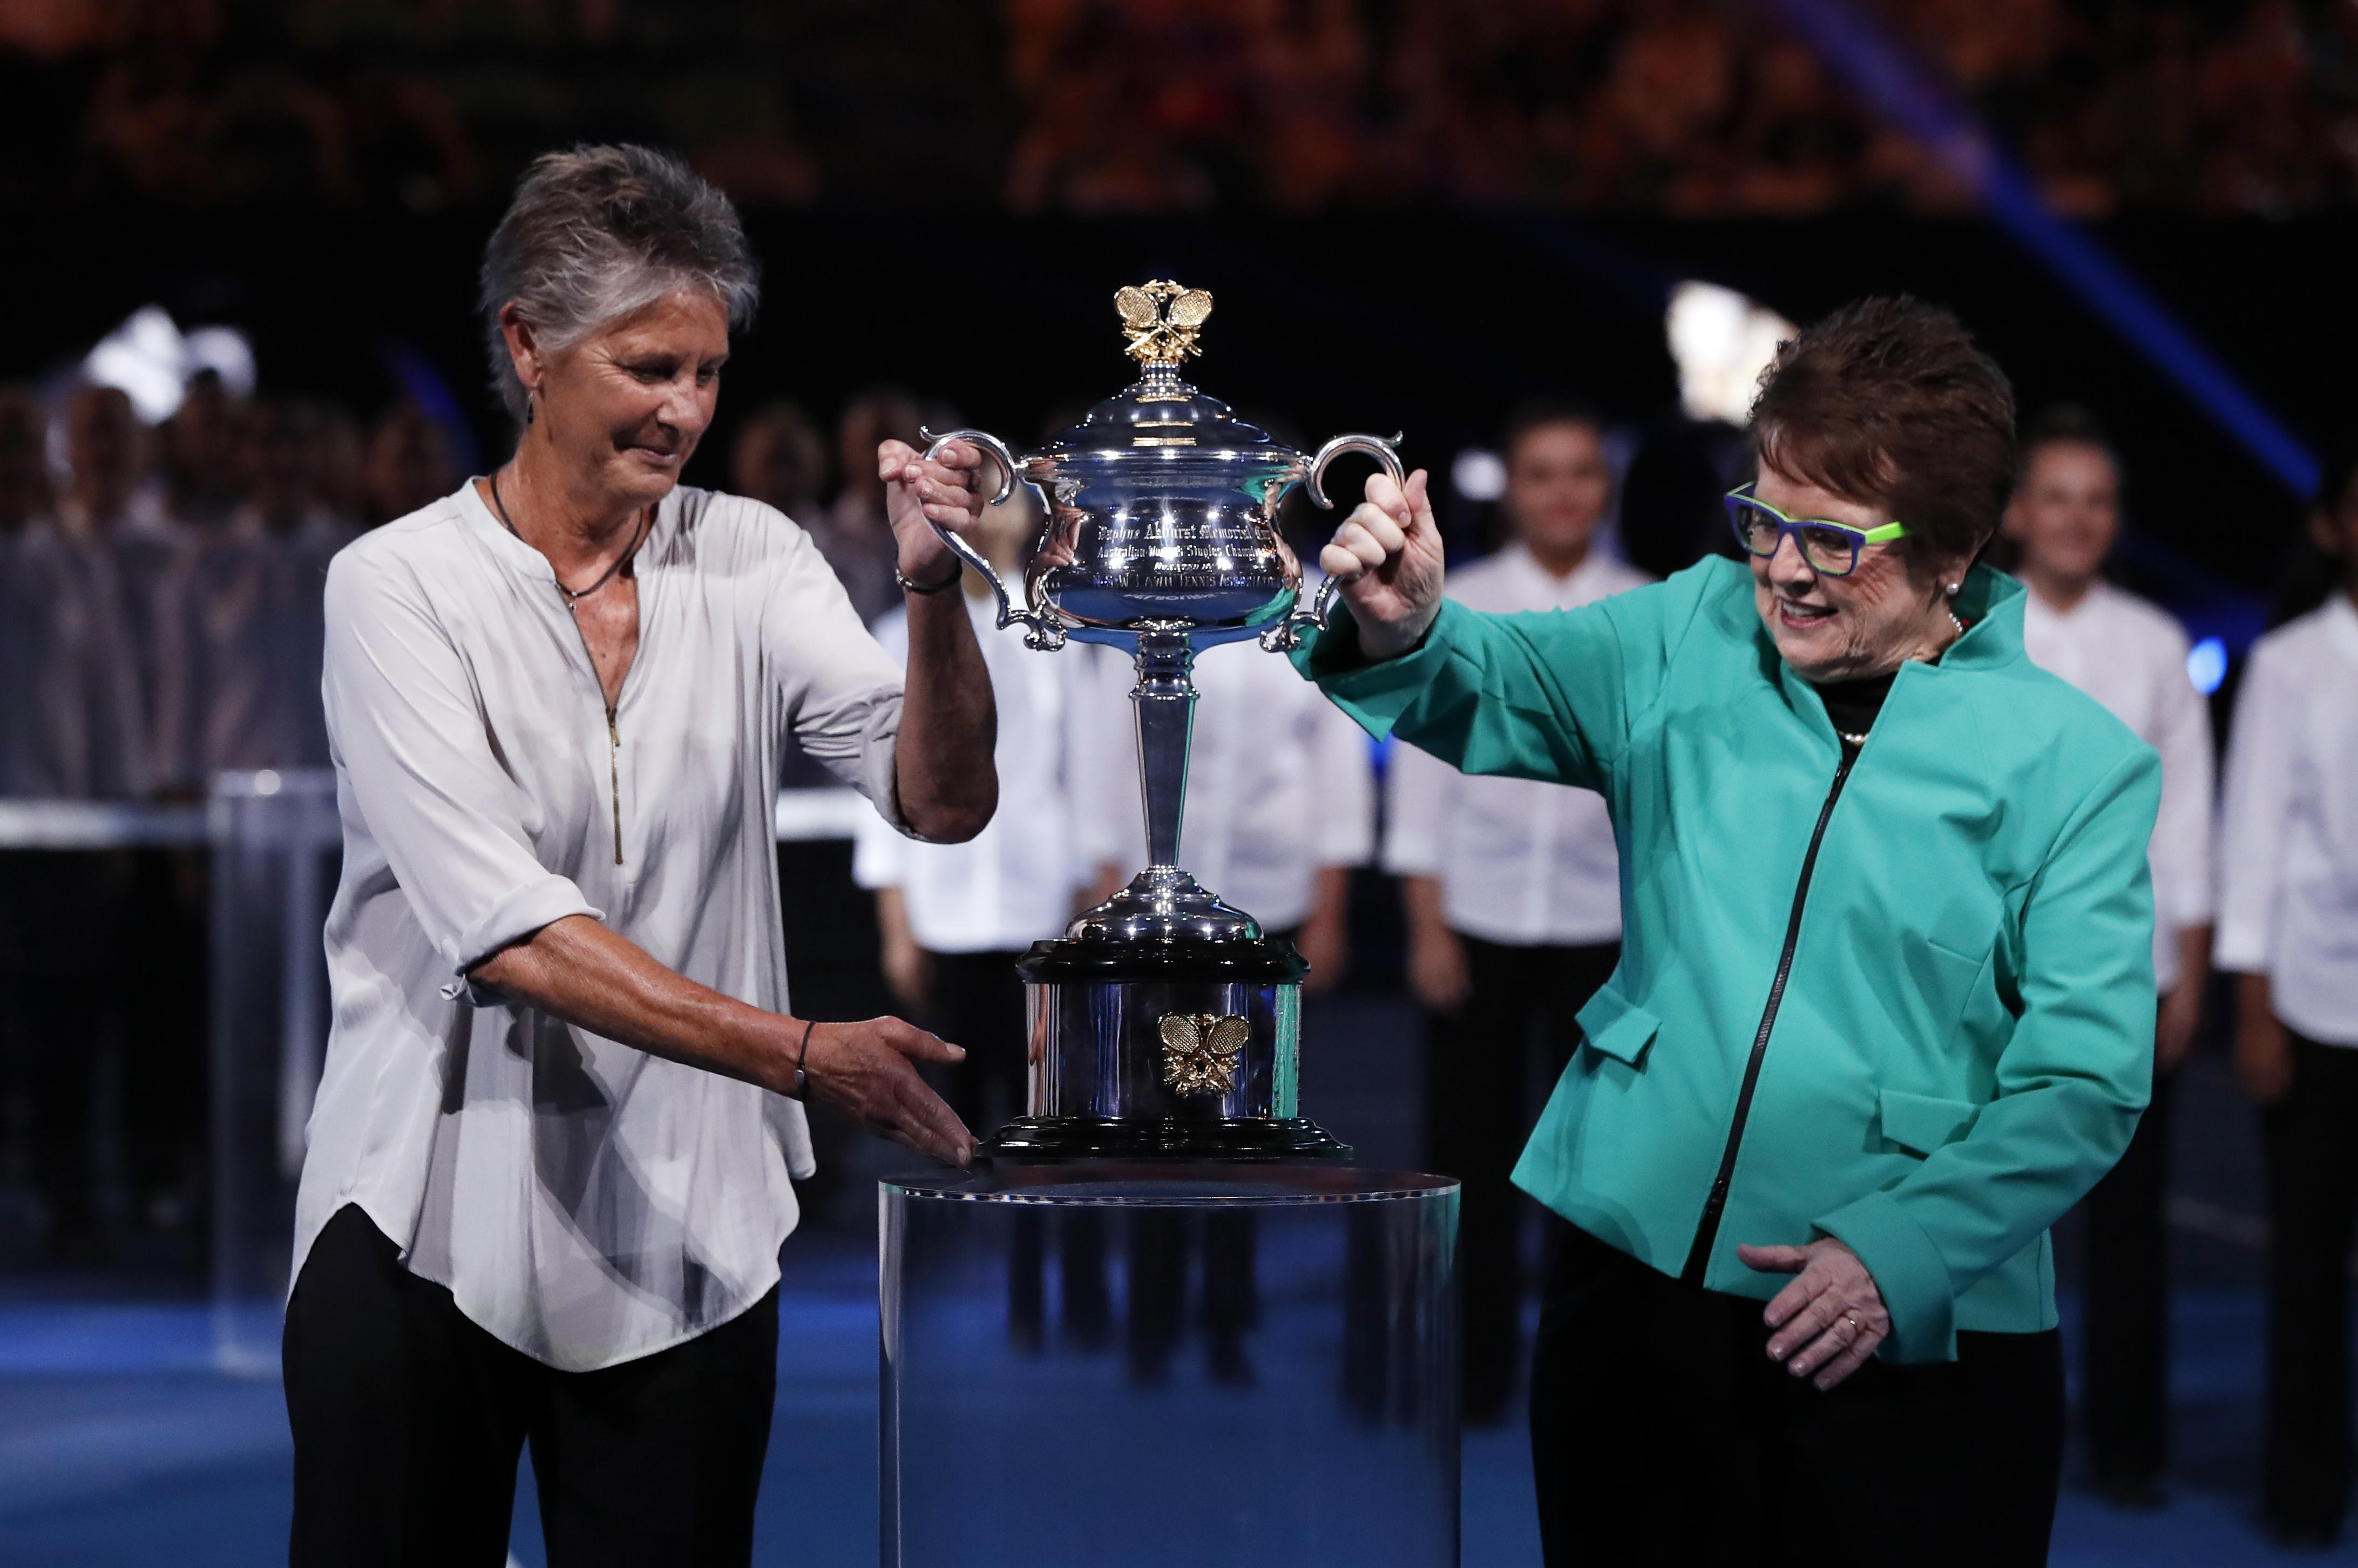 Chris O'Neil and Billie Jean King lift the trophy into place in Melbourne